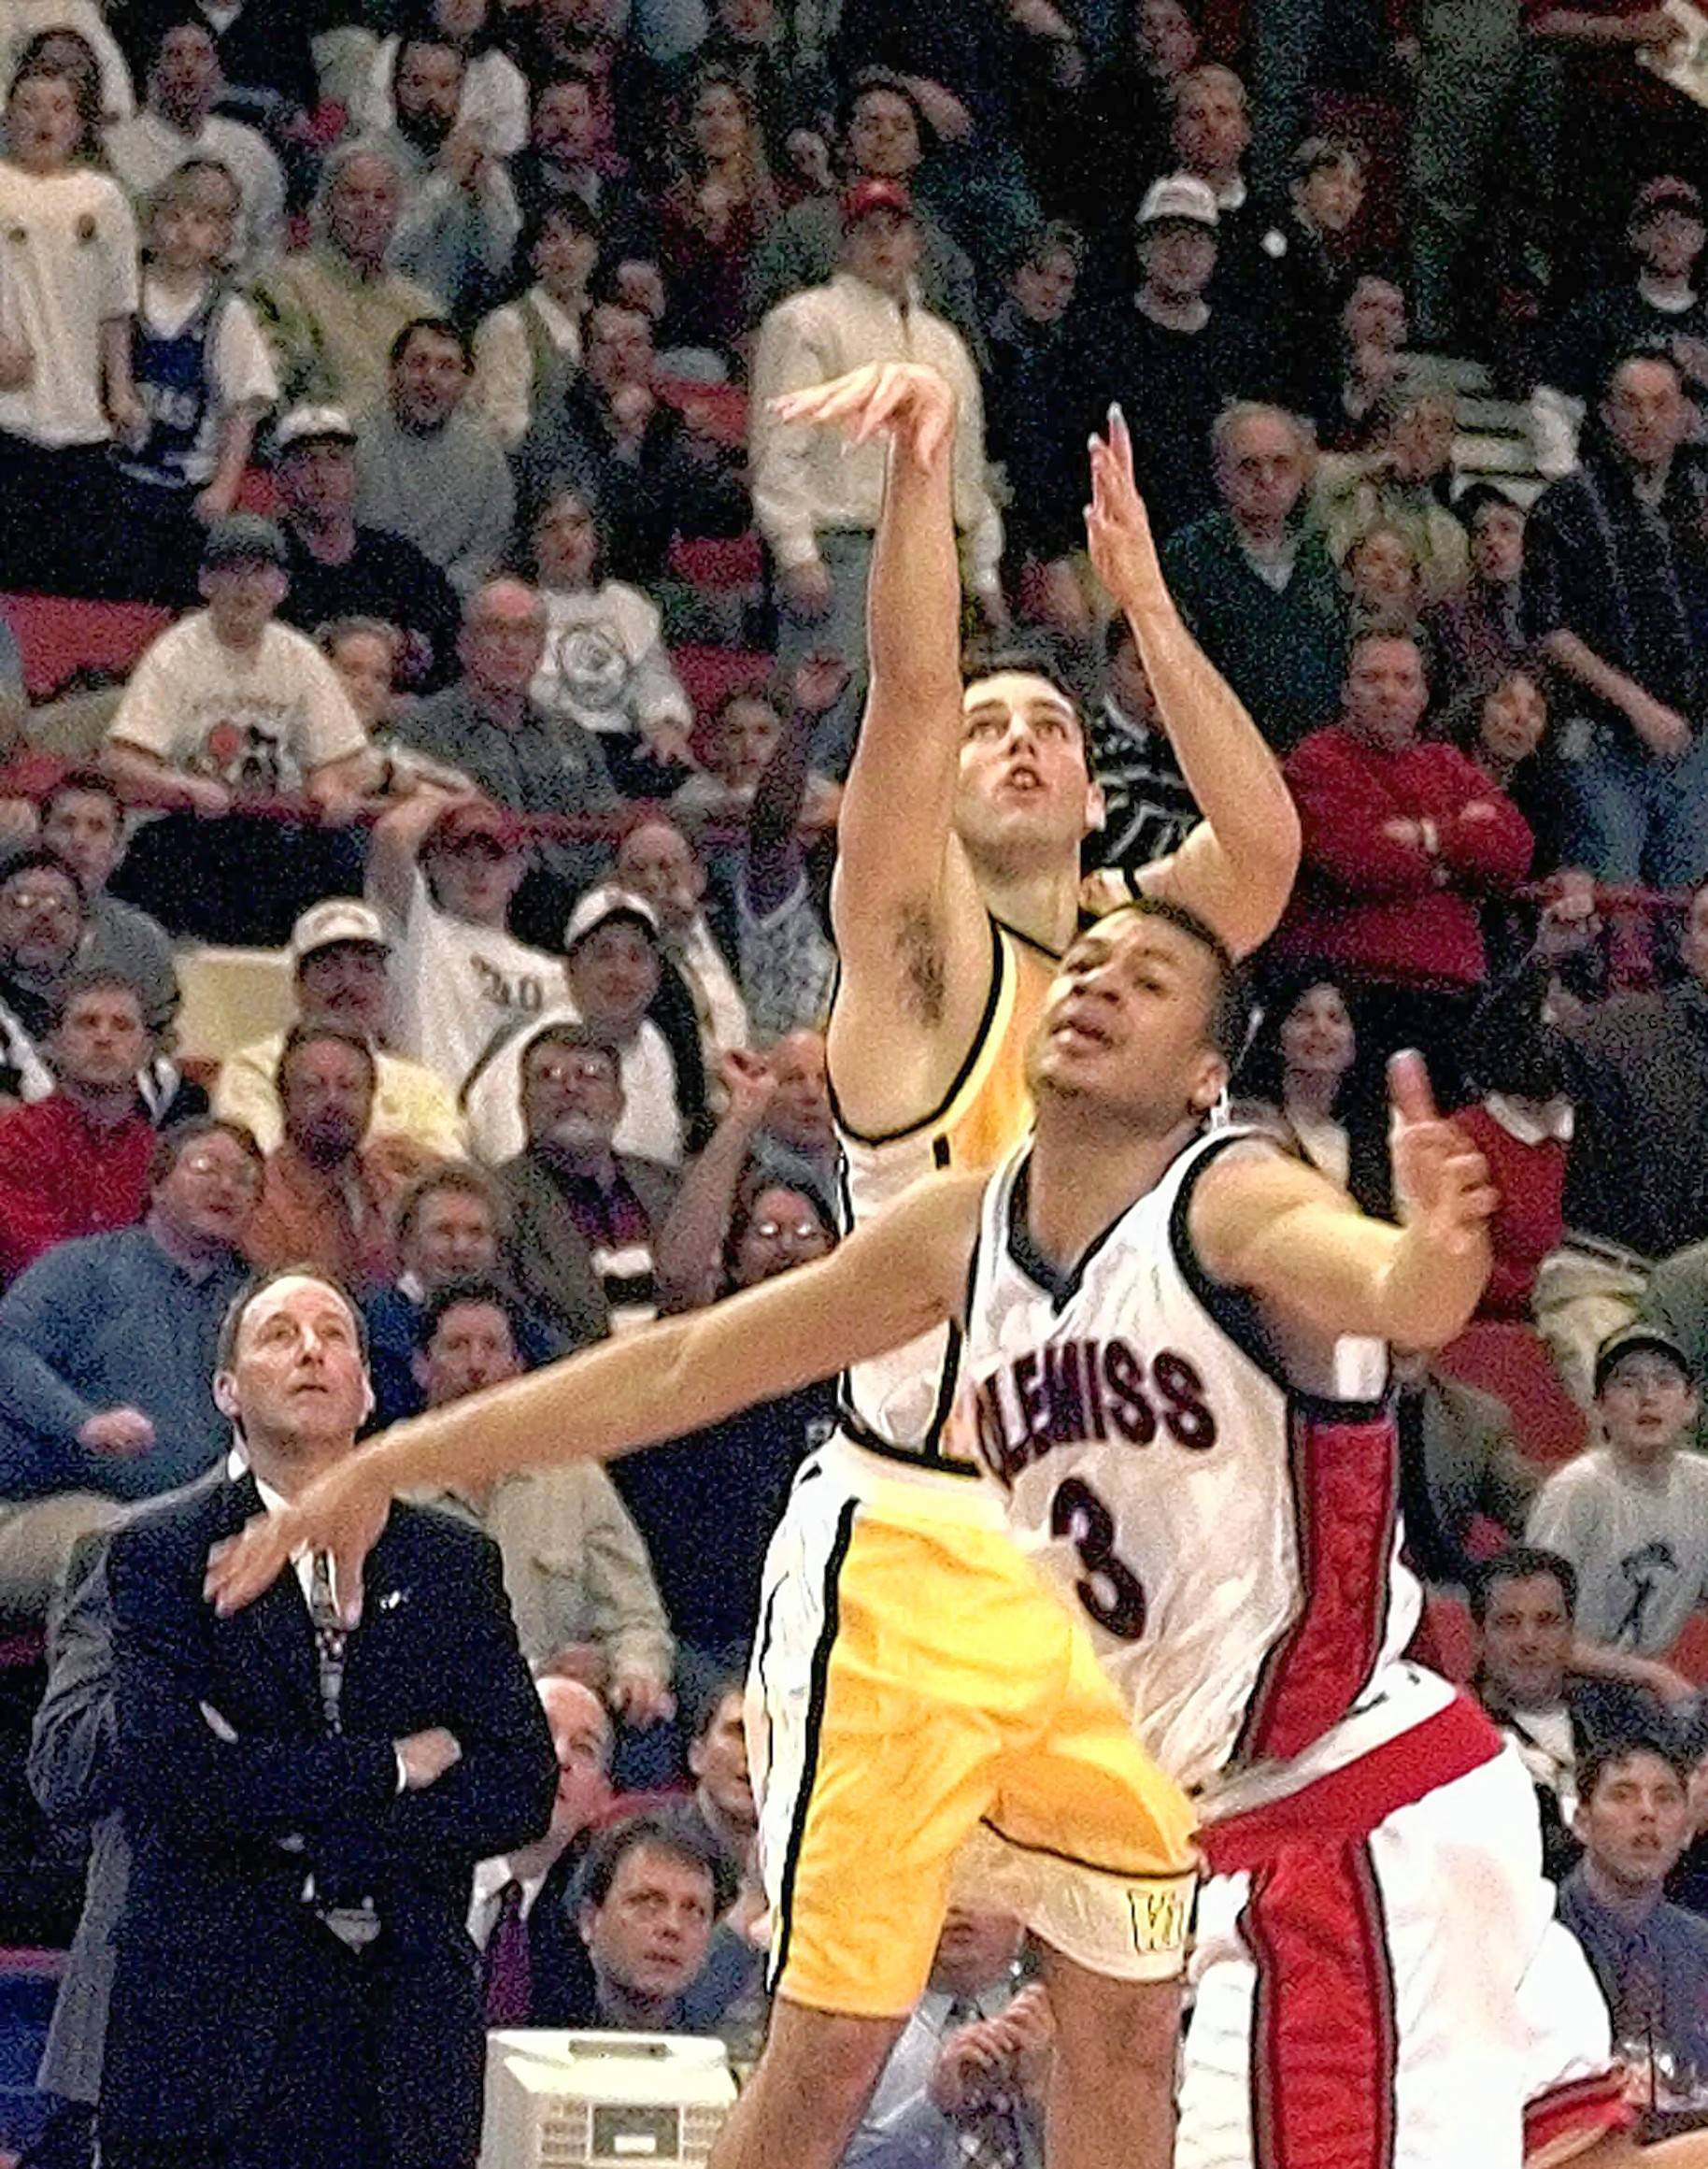 Valparaiso's Bryce Drew, shown here with his game-winning three-point shot at the buzzer against Mississippi in the NCAA game 20 years ago, says he initially thought it would come up short. So did his father, coach Homer Drew watching at left.